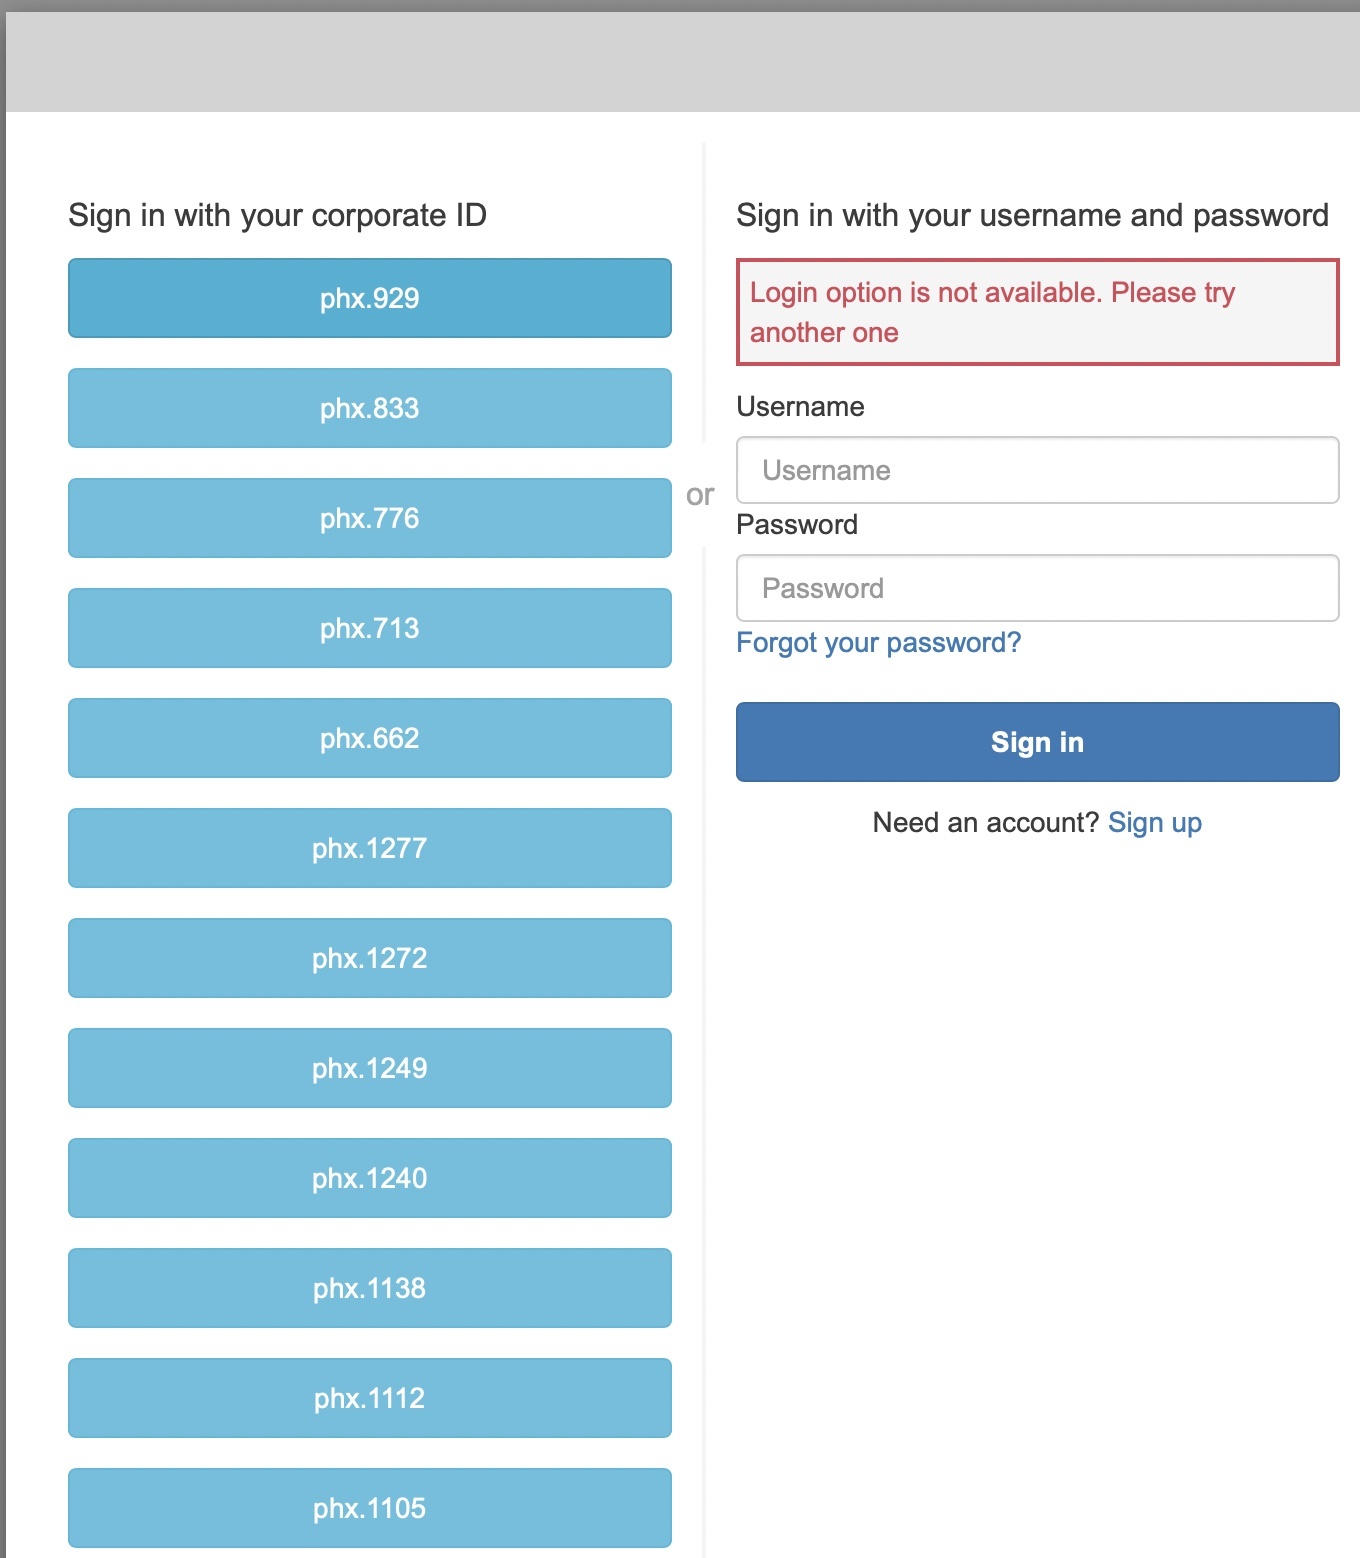 """A screenshot showing a login window with multiple corporate ID options and the message """"Login option is not available. Please try another one""""."""